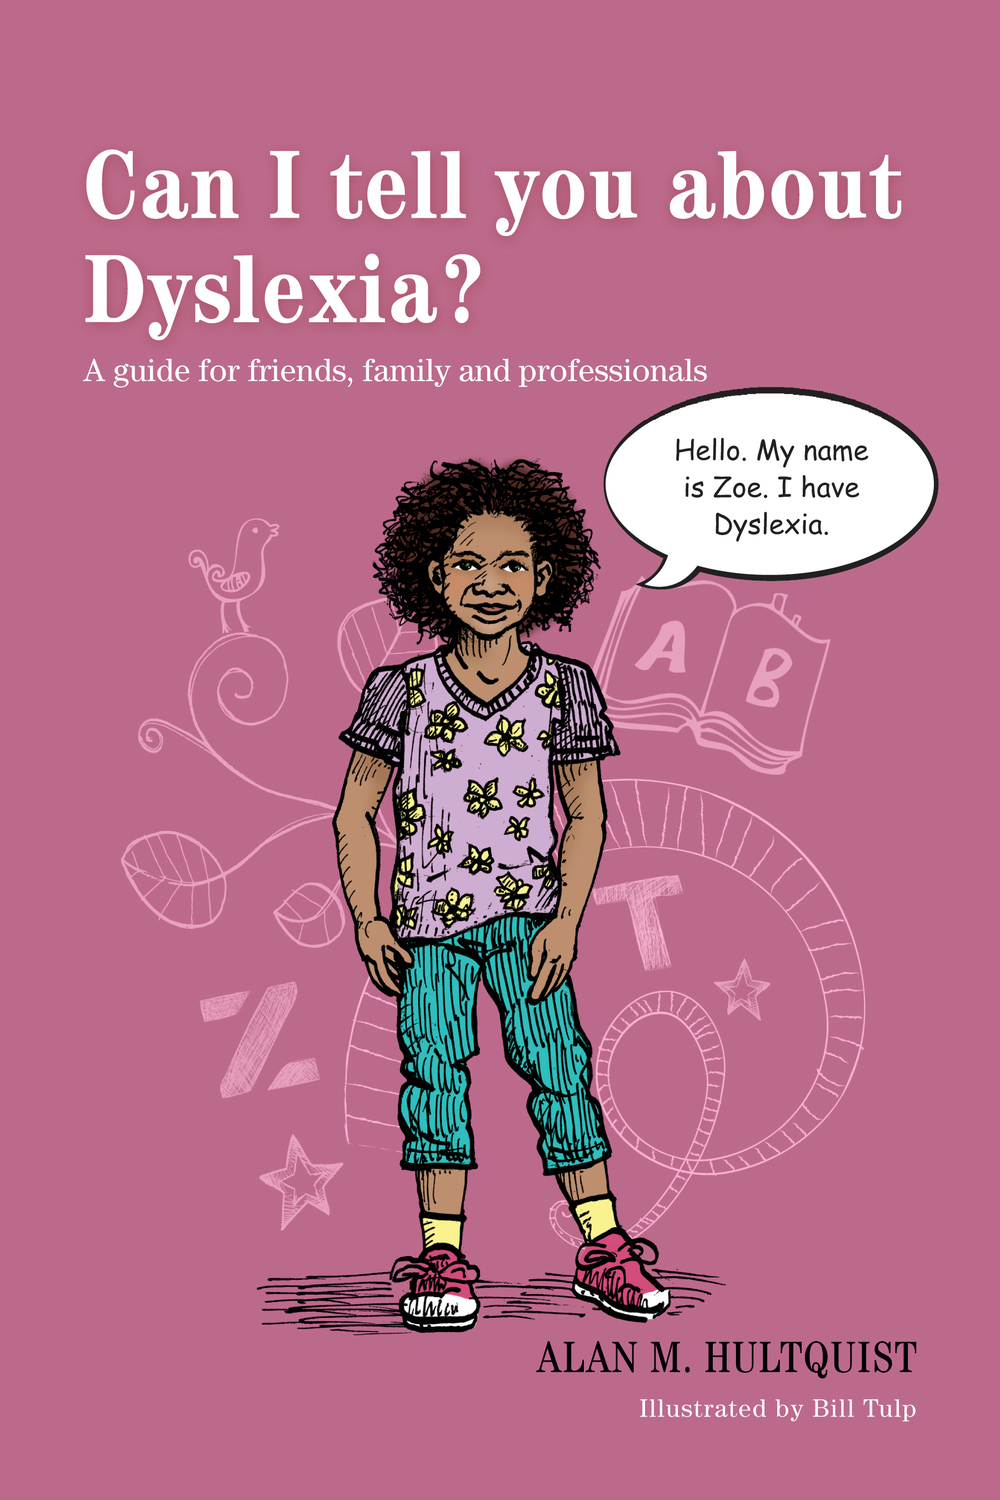 Can I tell you about Dyslexia? A guide for friends,  family and professionals